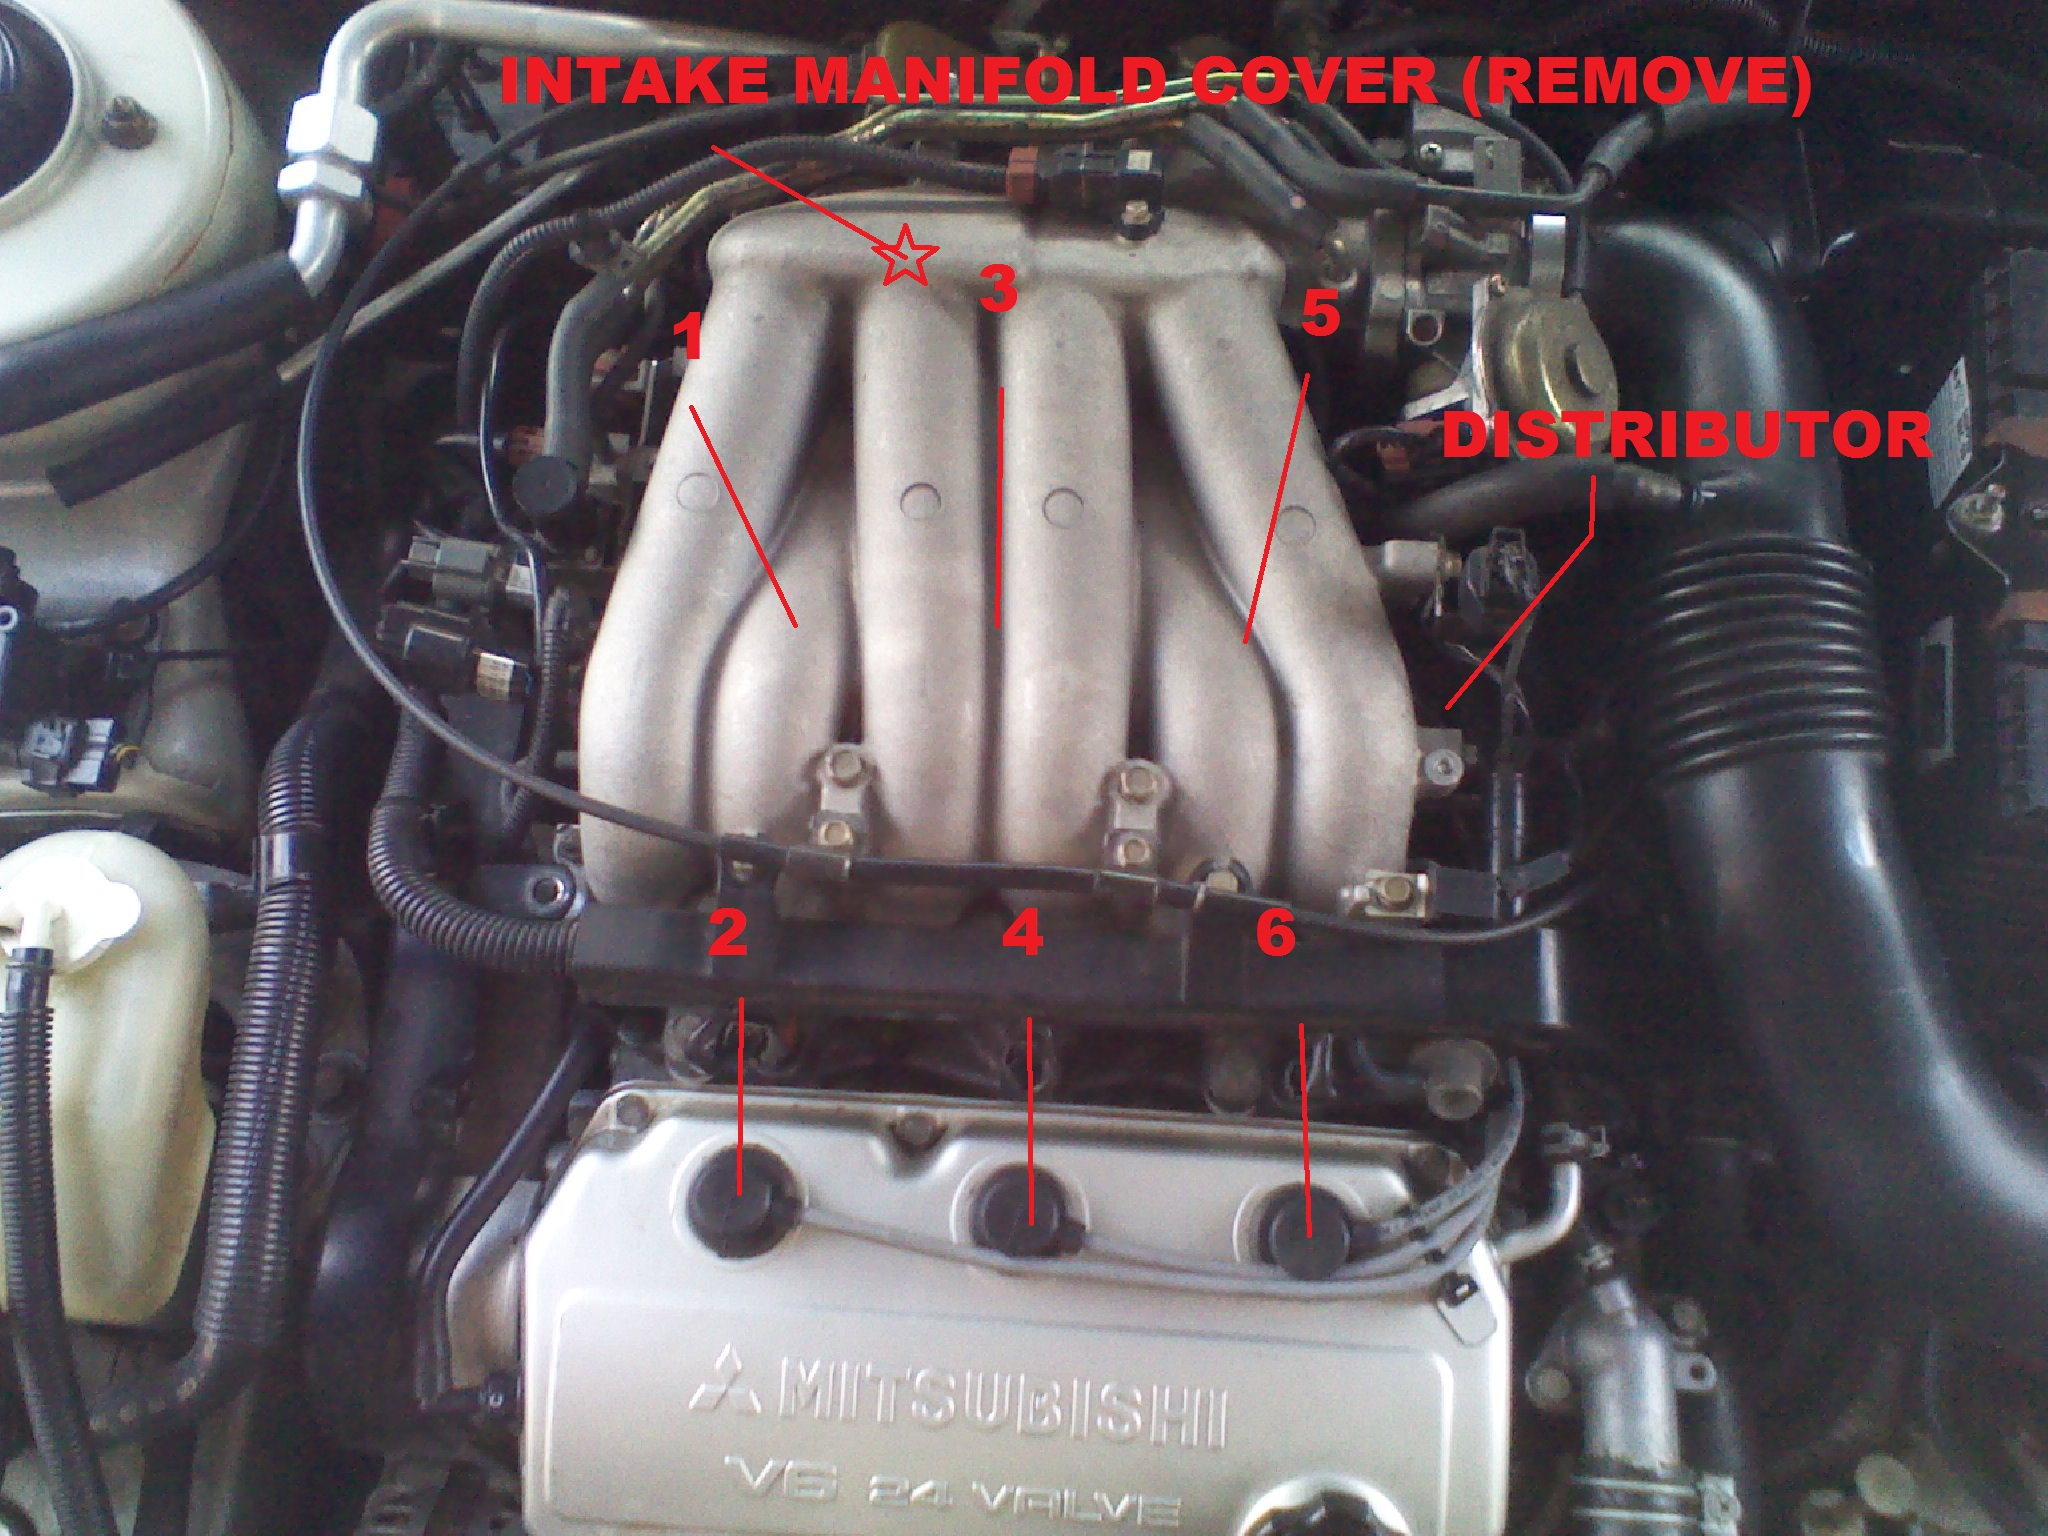 2003 Mitsubishi Eclipse Spyder Fuse Diagram Diy Enthusiasts Wiring 2001 Box Window Free Engine Image For User Manual Download Gt